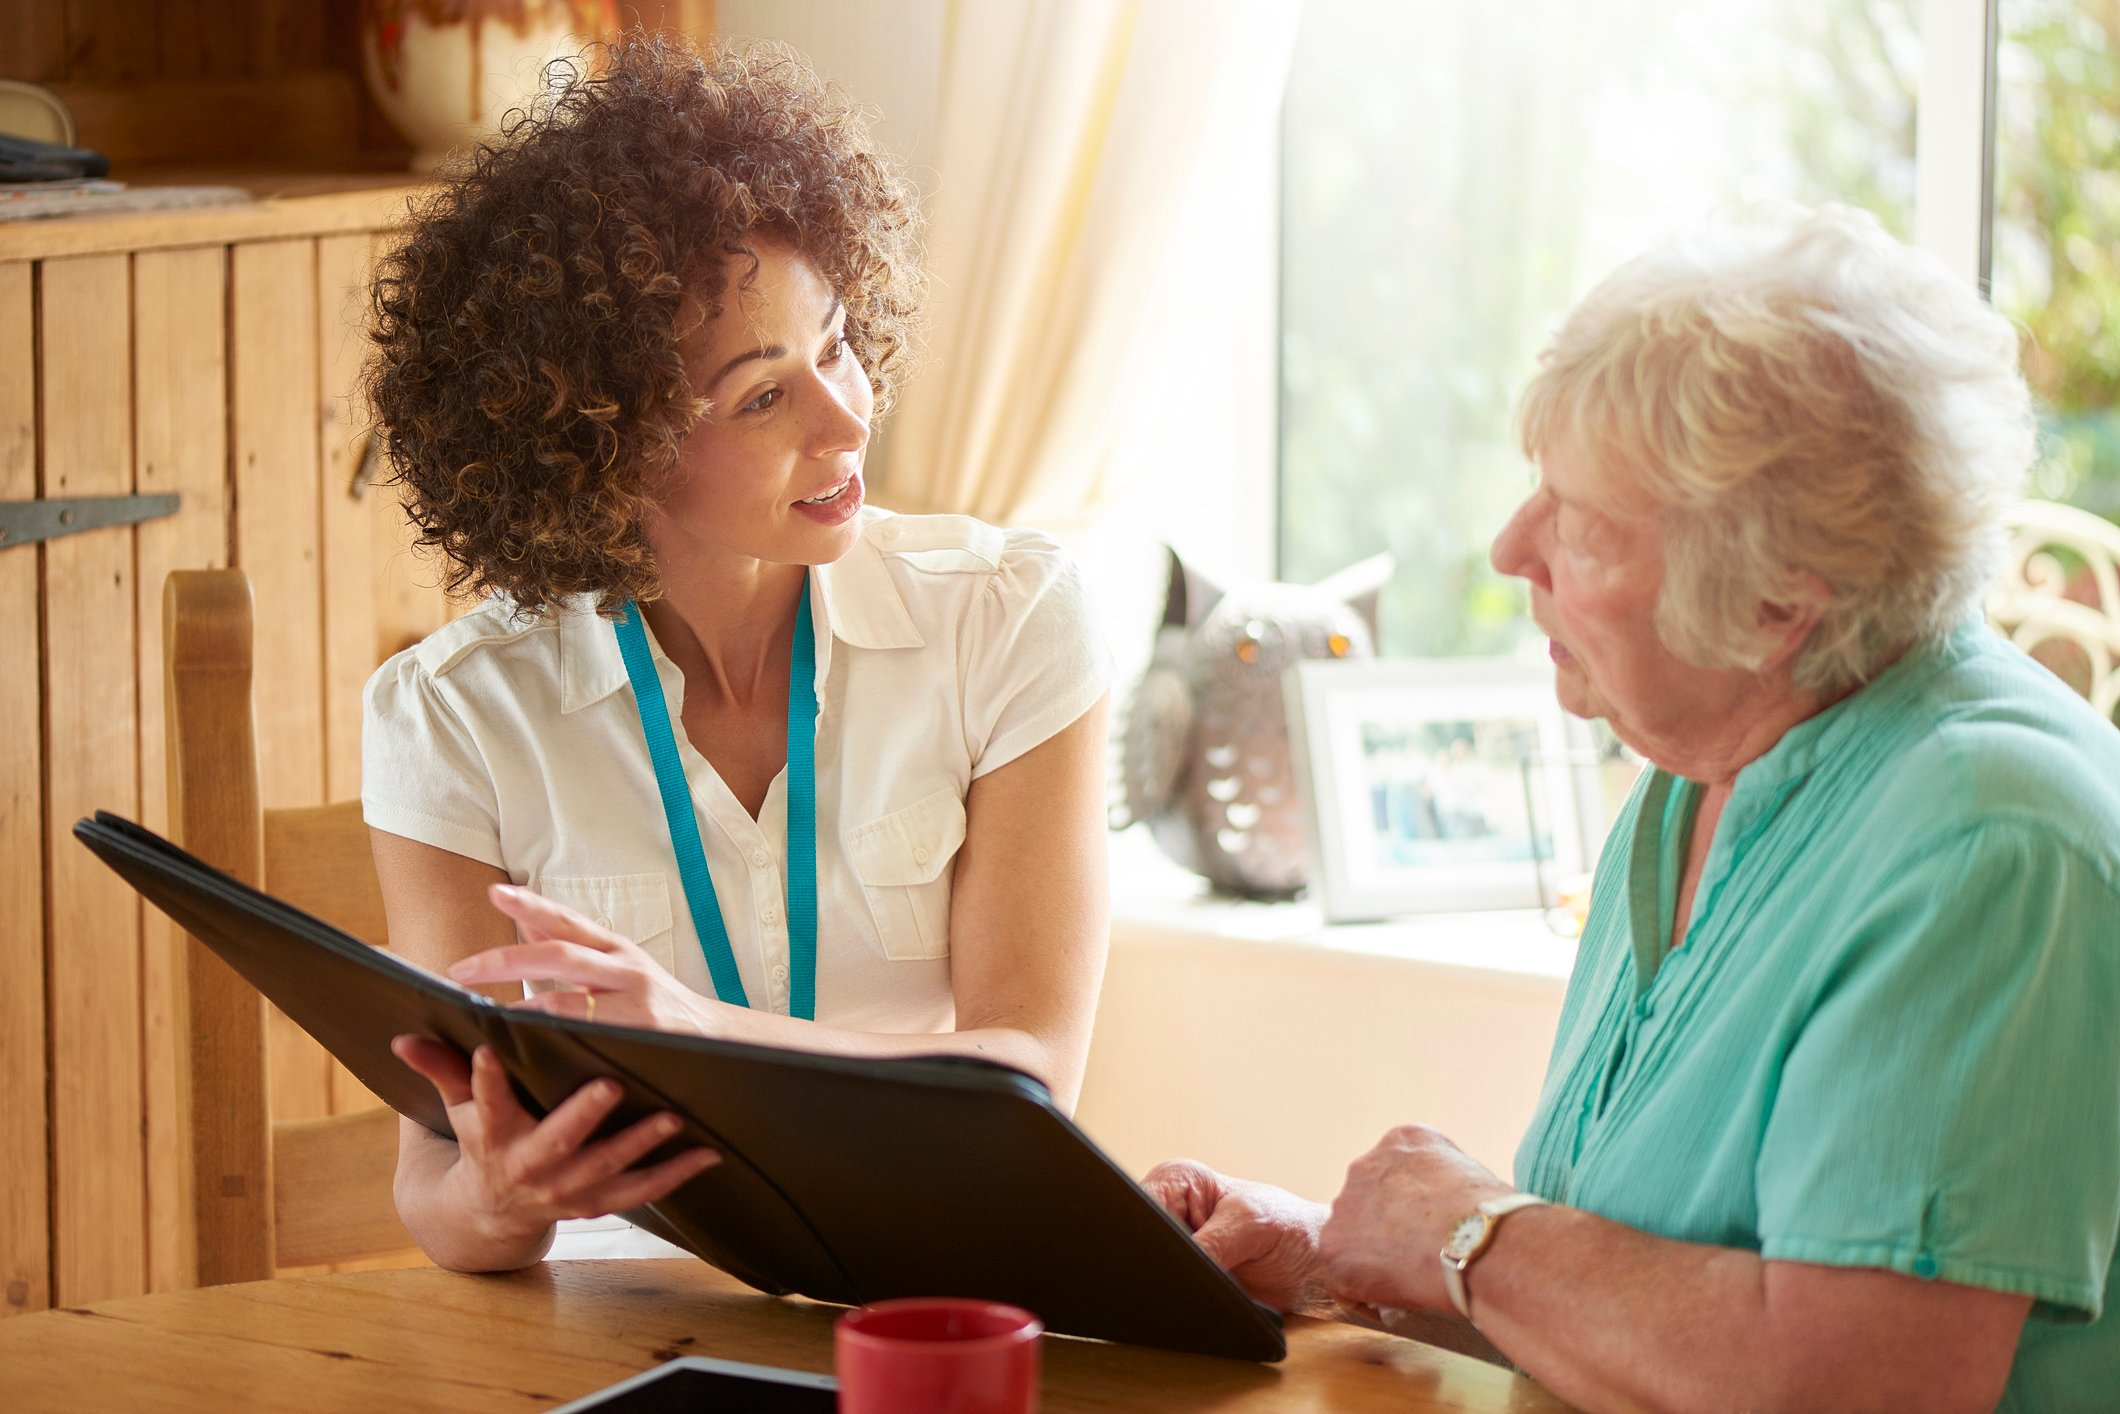 How to Work with Staff to Make the Move to Assisted Living Stress-free